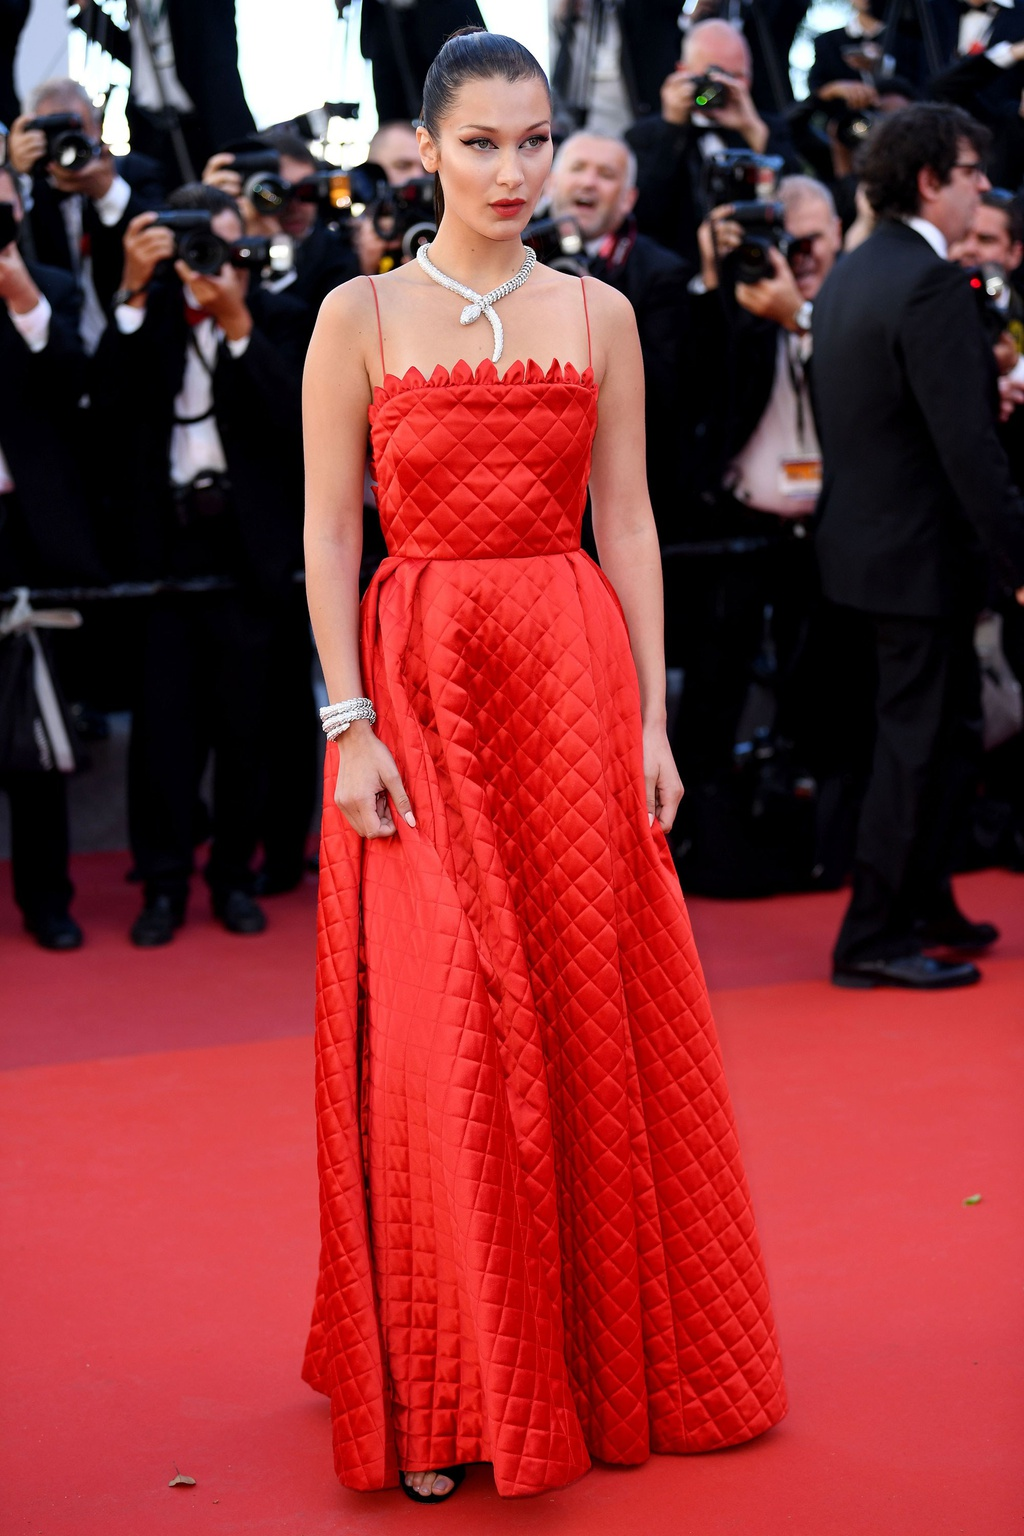 Ly Vu Xuan Cannes anh 6